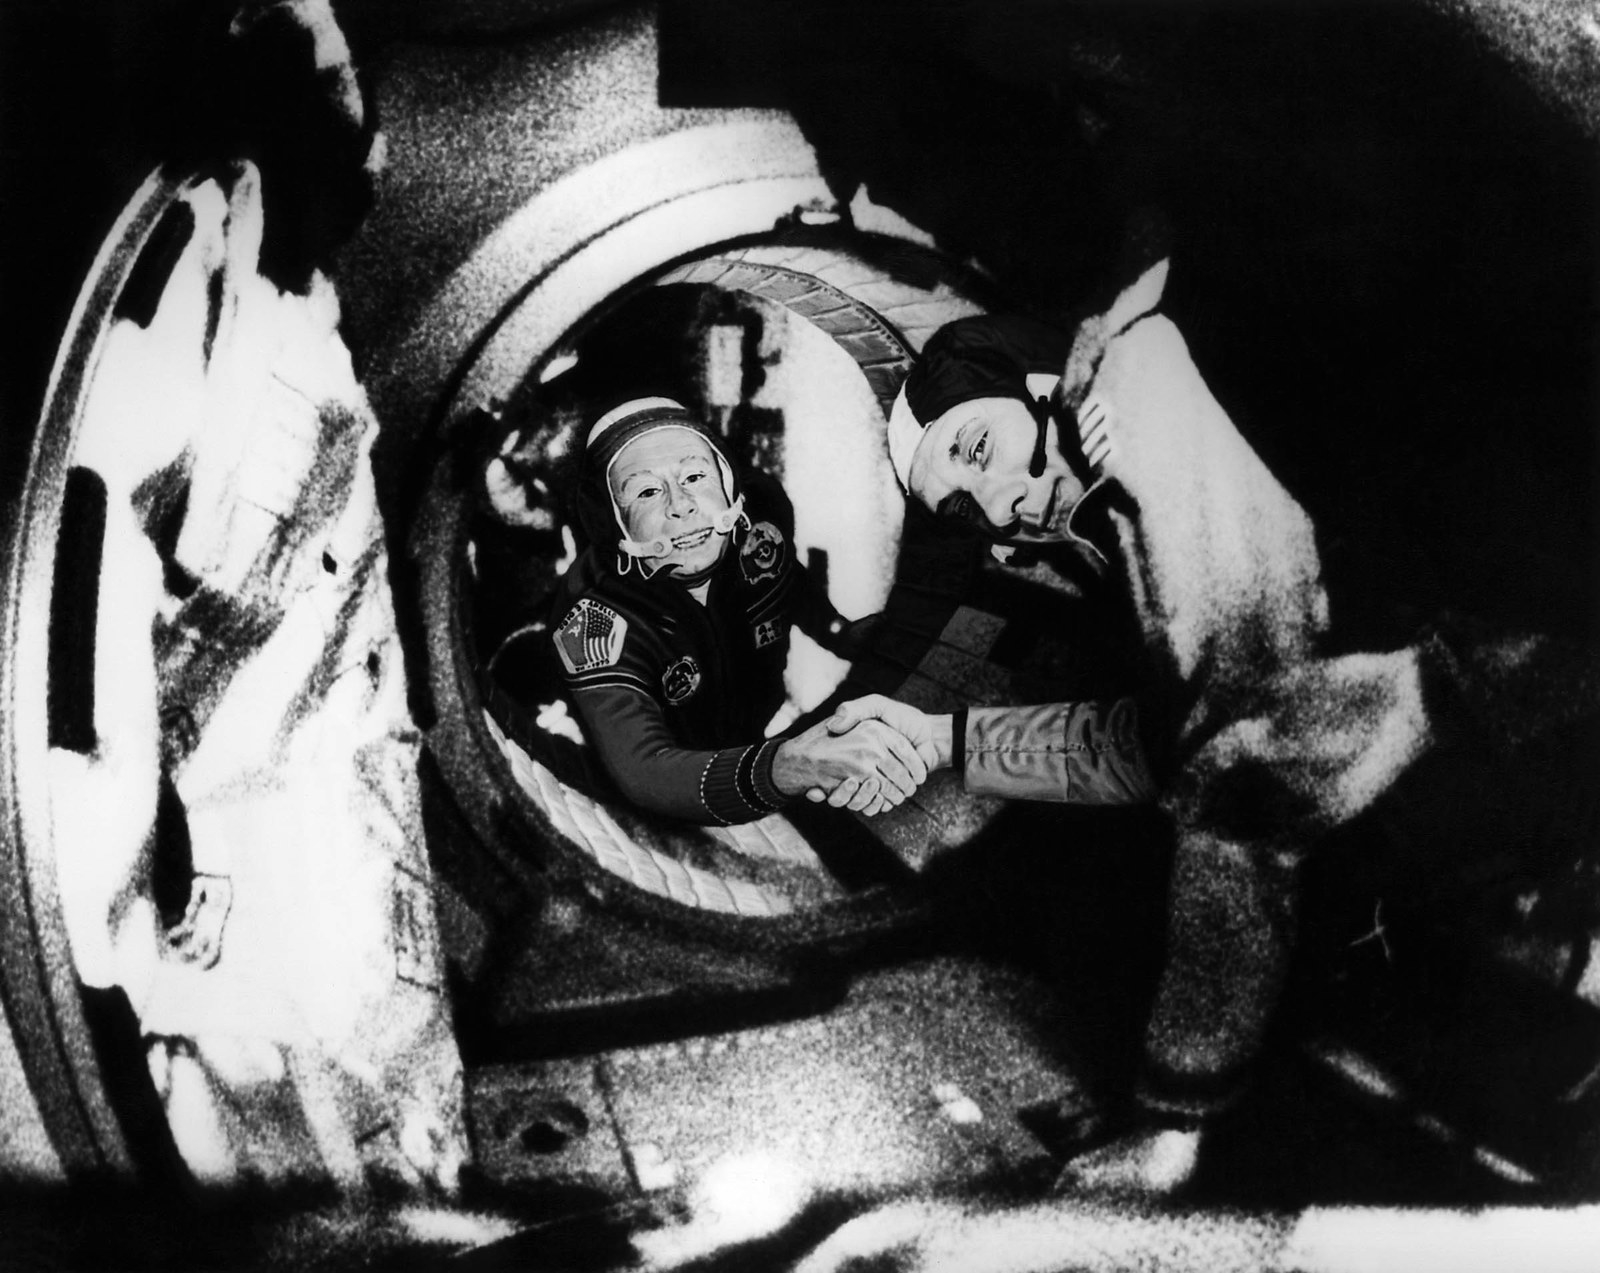 1975 Commander of the Soviet crew of Soyuz Alexei Leonov (left) and commander of the American crew of Apollo Thomas Stafford, shake hands on July 17, 1975, somewhere over Western Germany, after the Apollo–Soyuz docking manoeuvres. This was the first time the two nations met in space — supposedly ending the Space Race that had come before it.